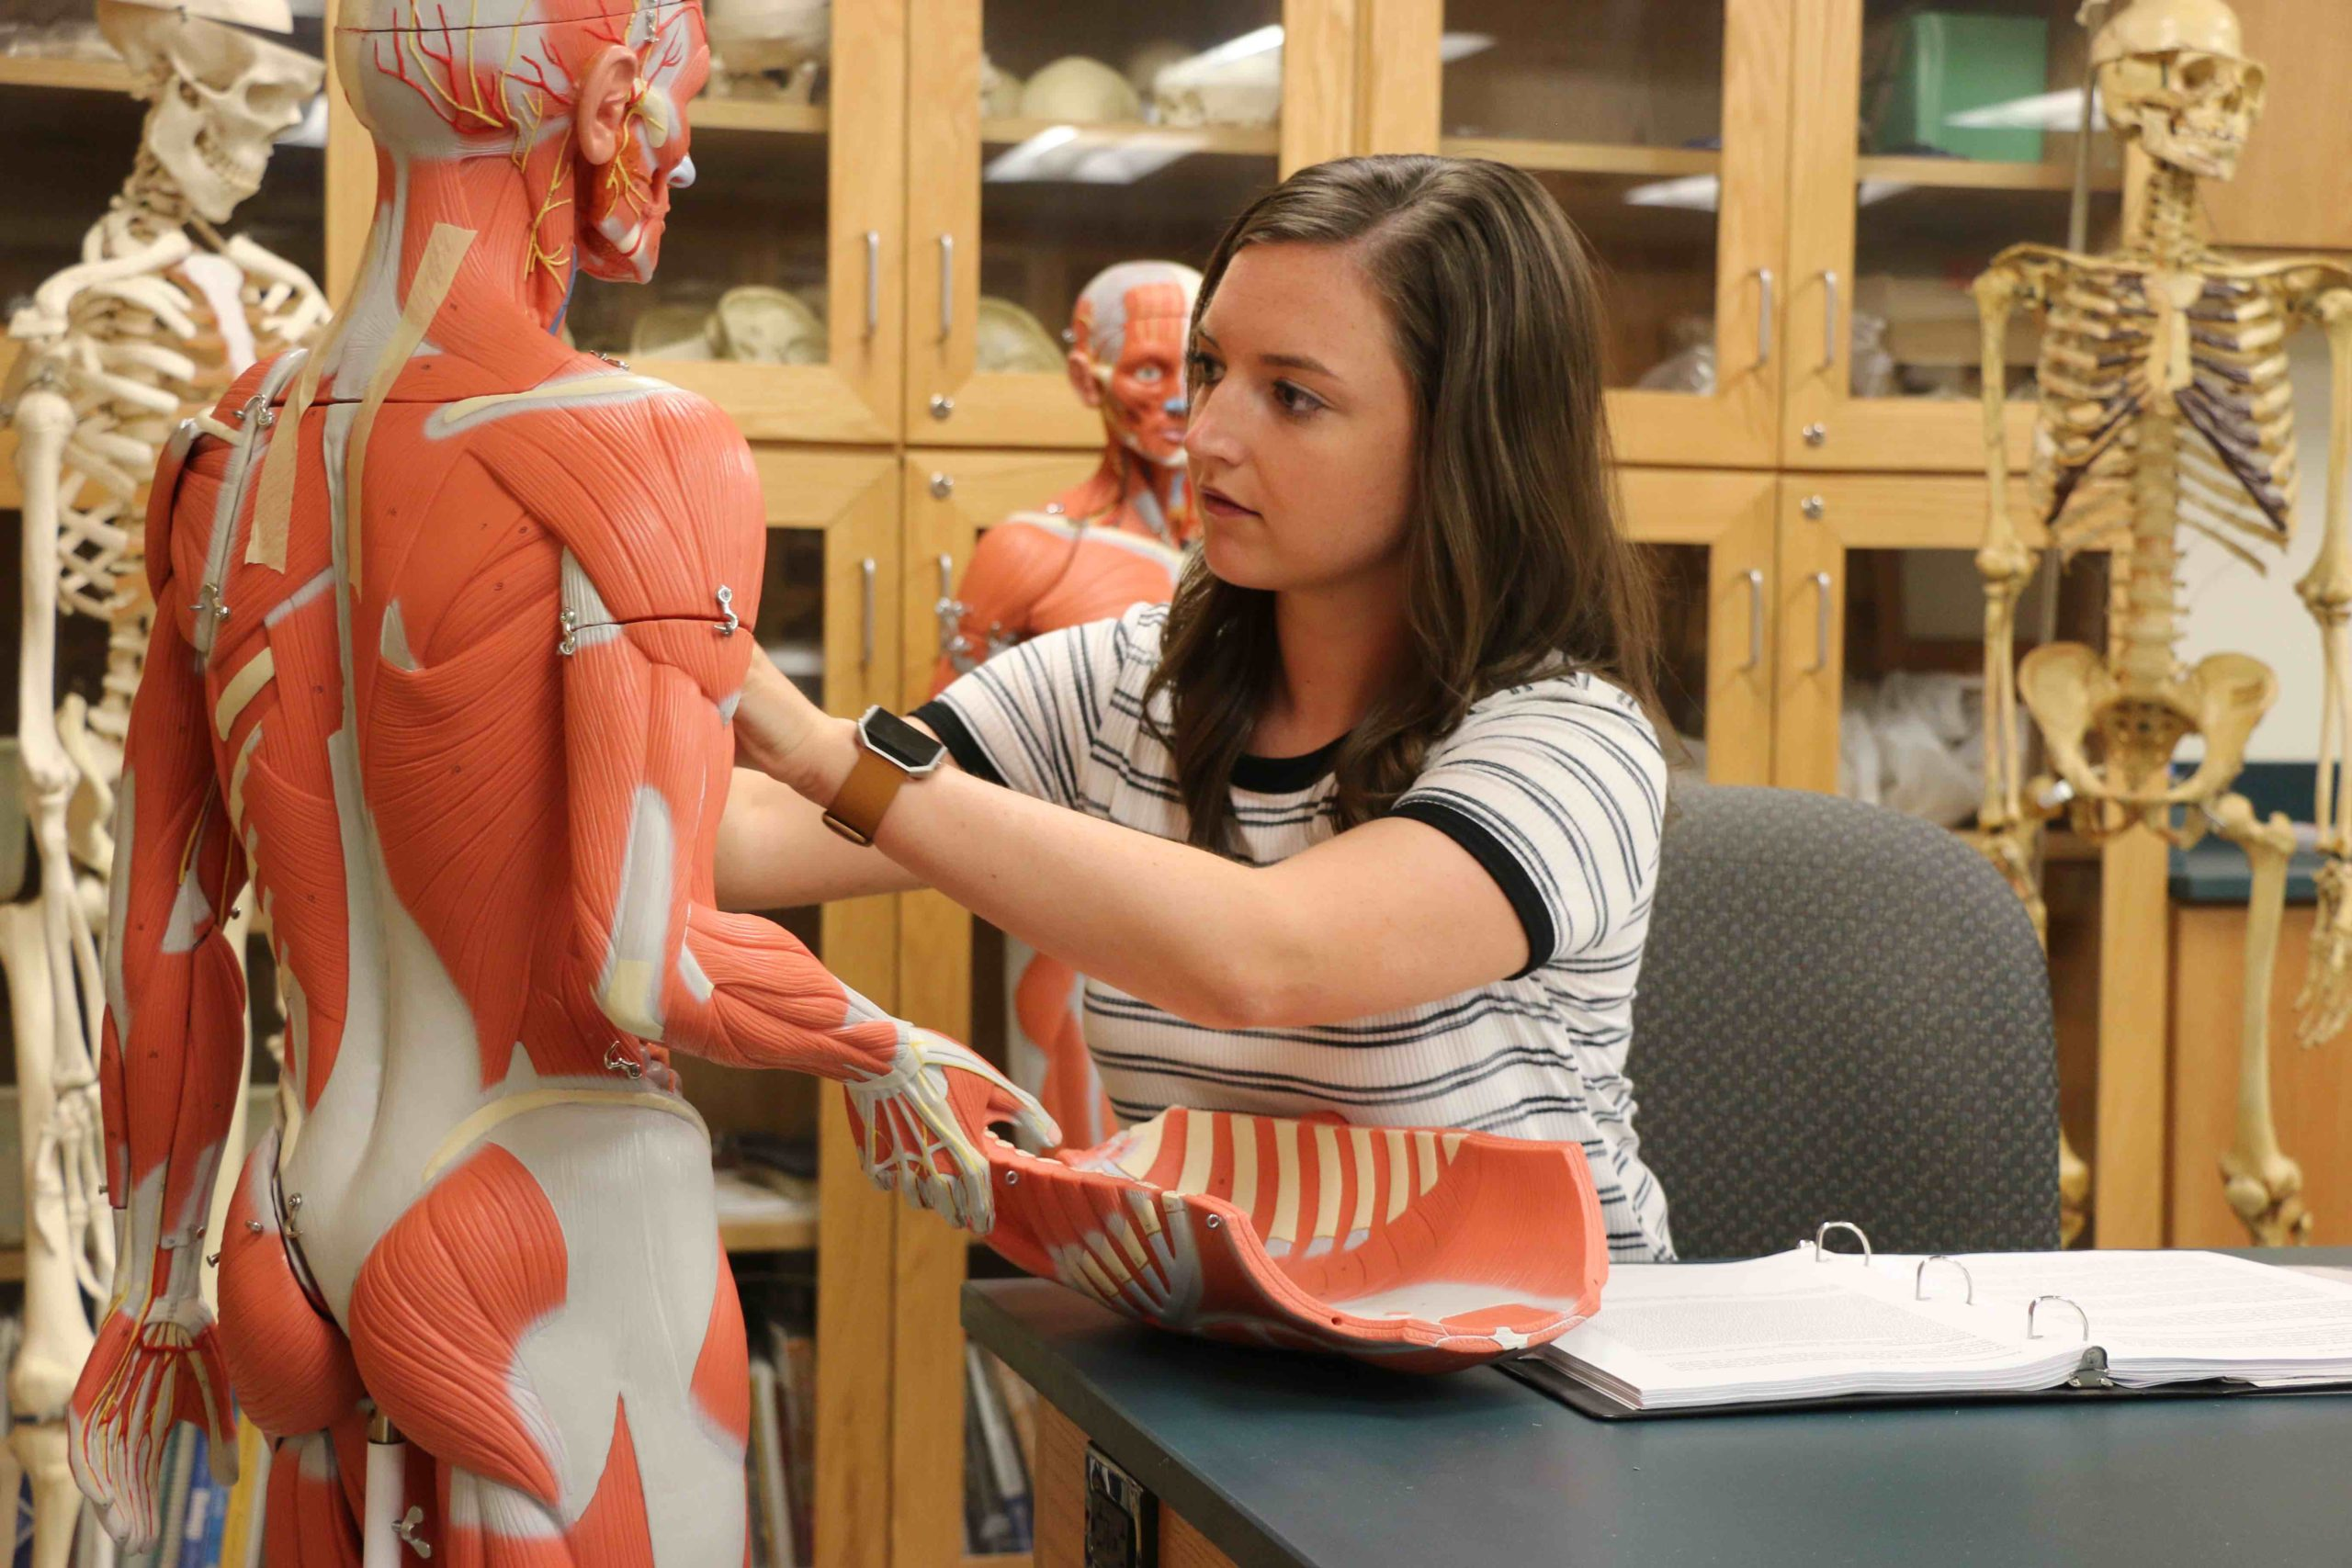 Student studying the musculature of an anatomic mannequin in a physiology lab